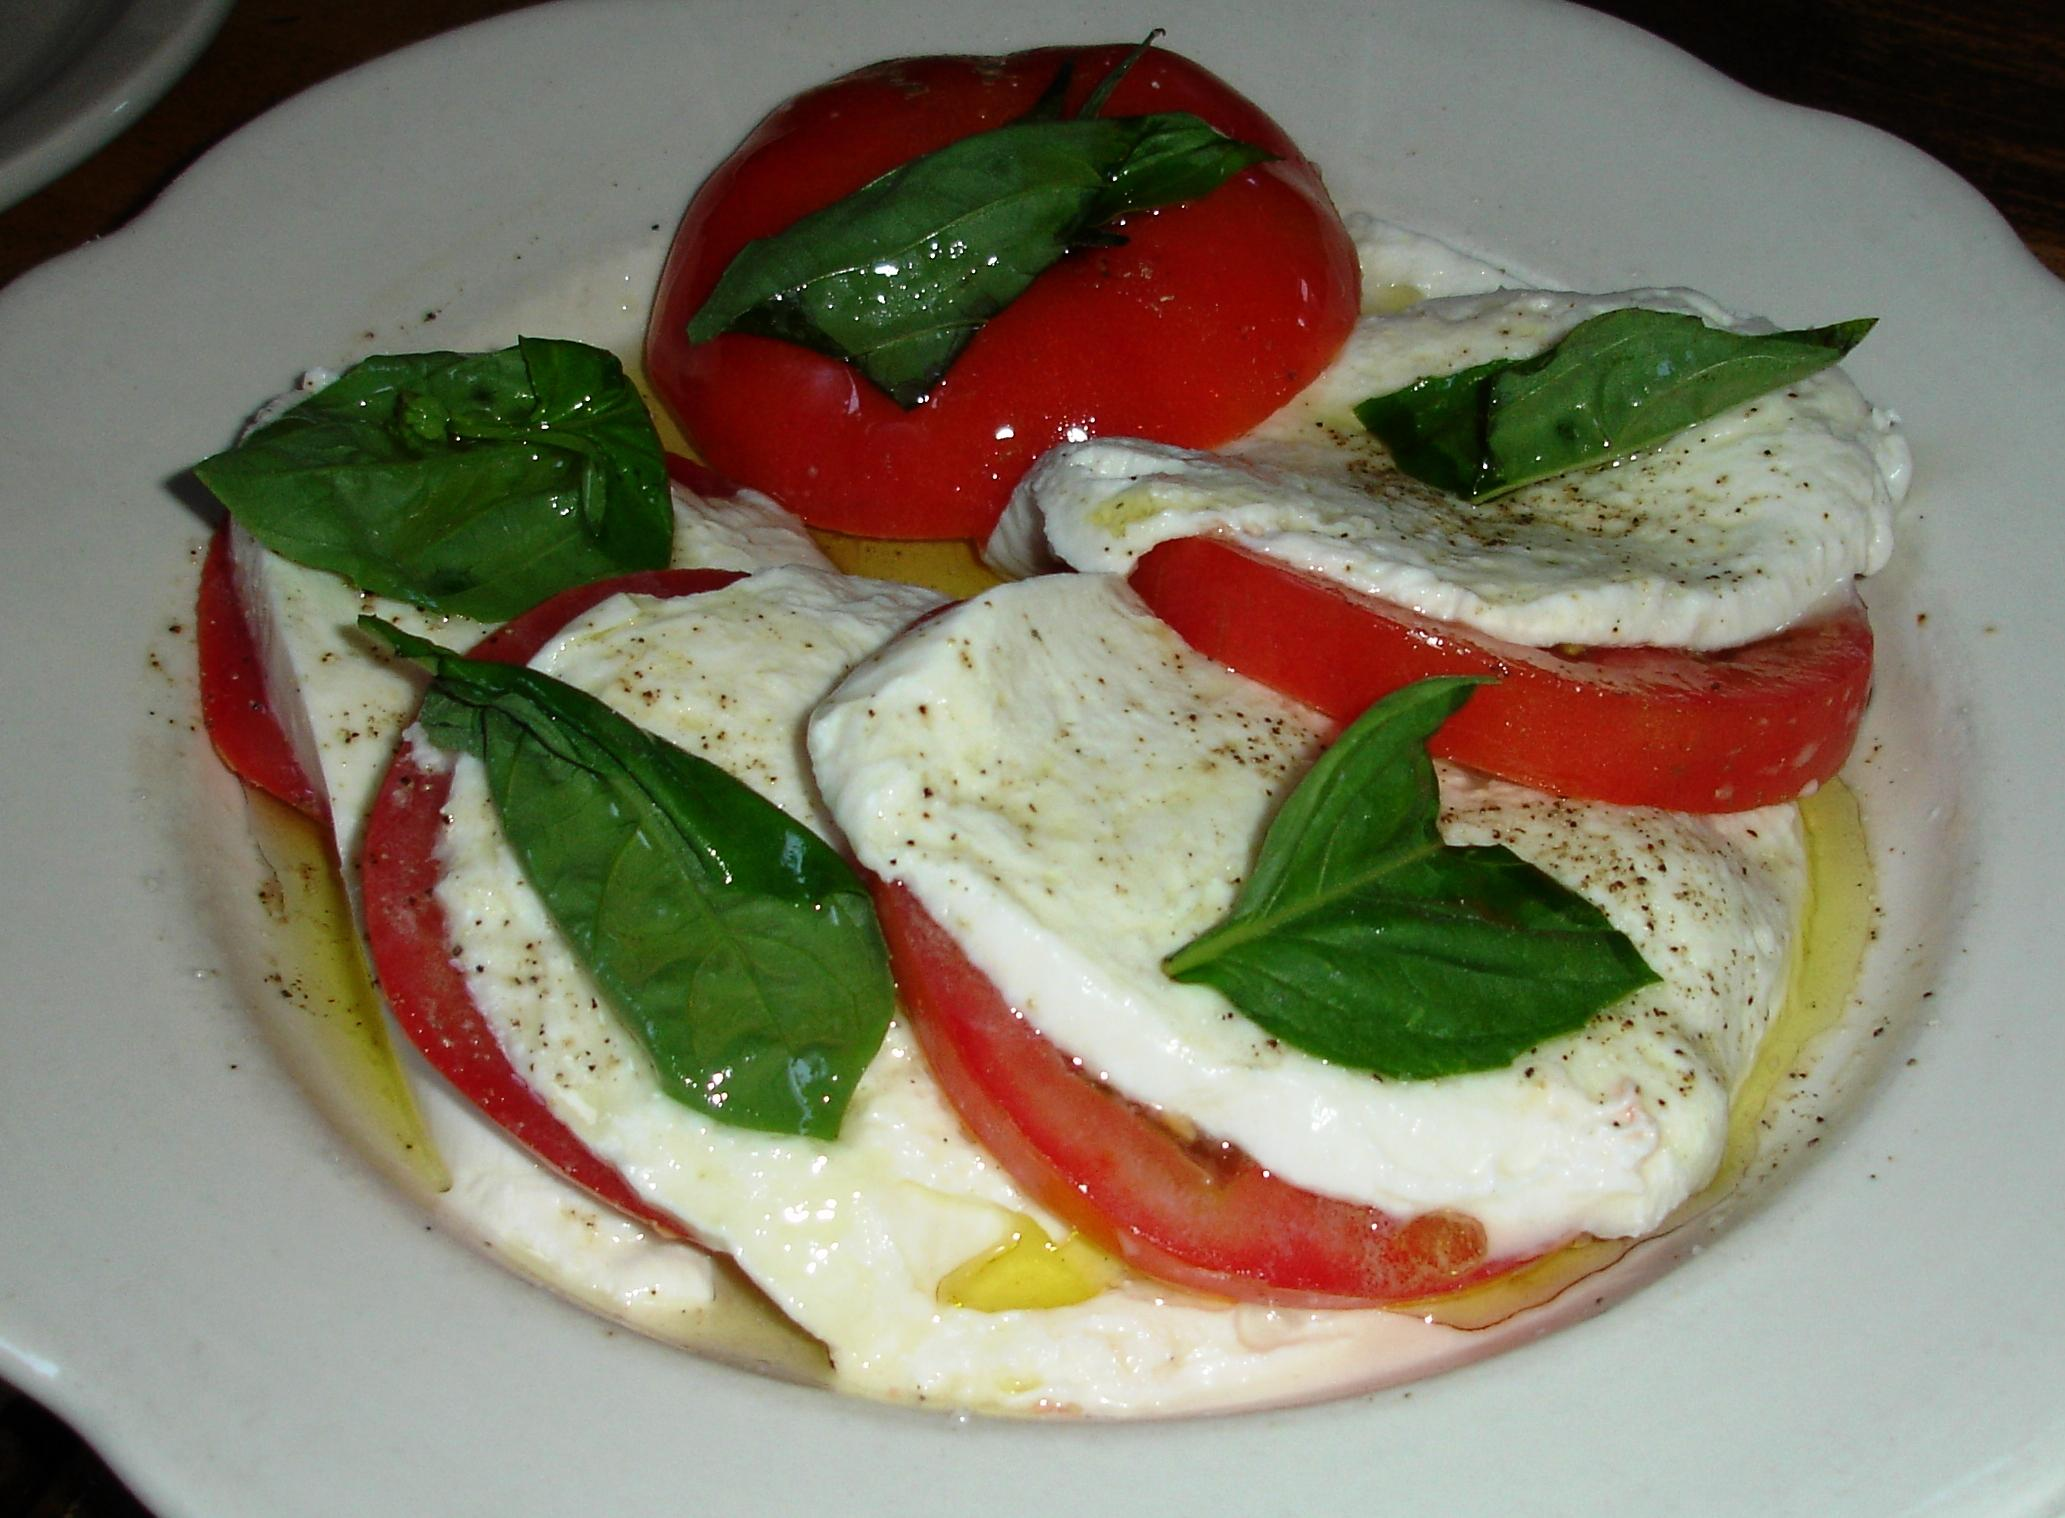 The handmade moist mozzarella can be enjoyed as part of a salad.